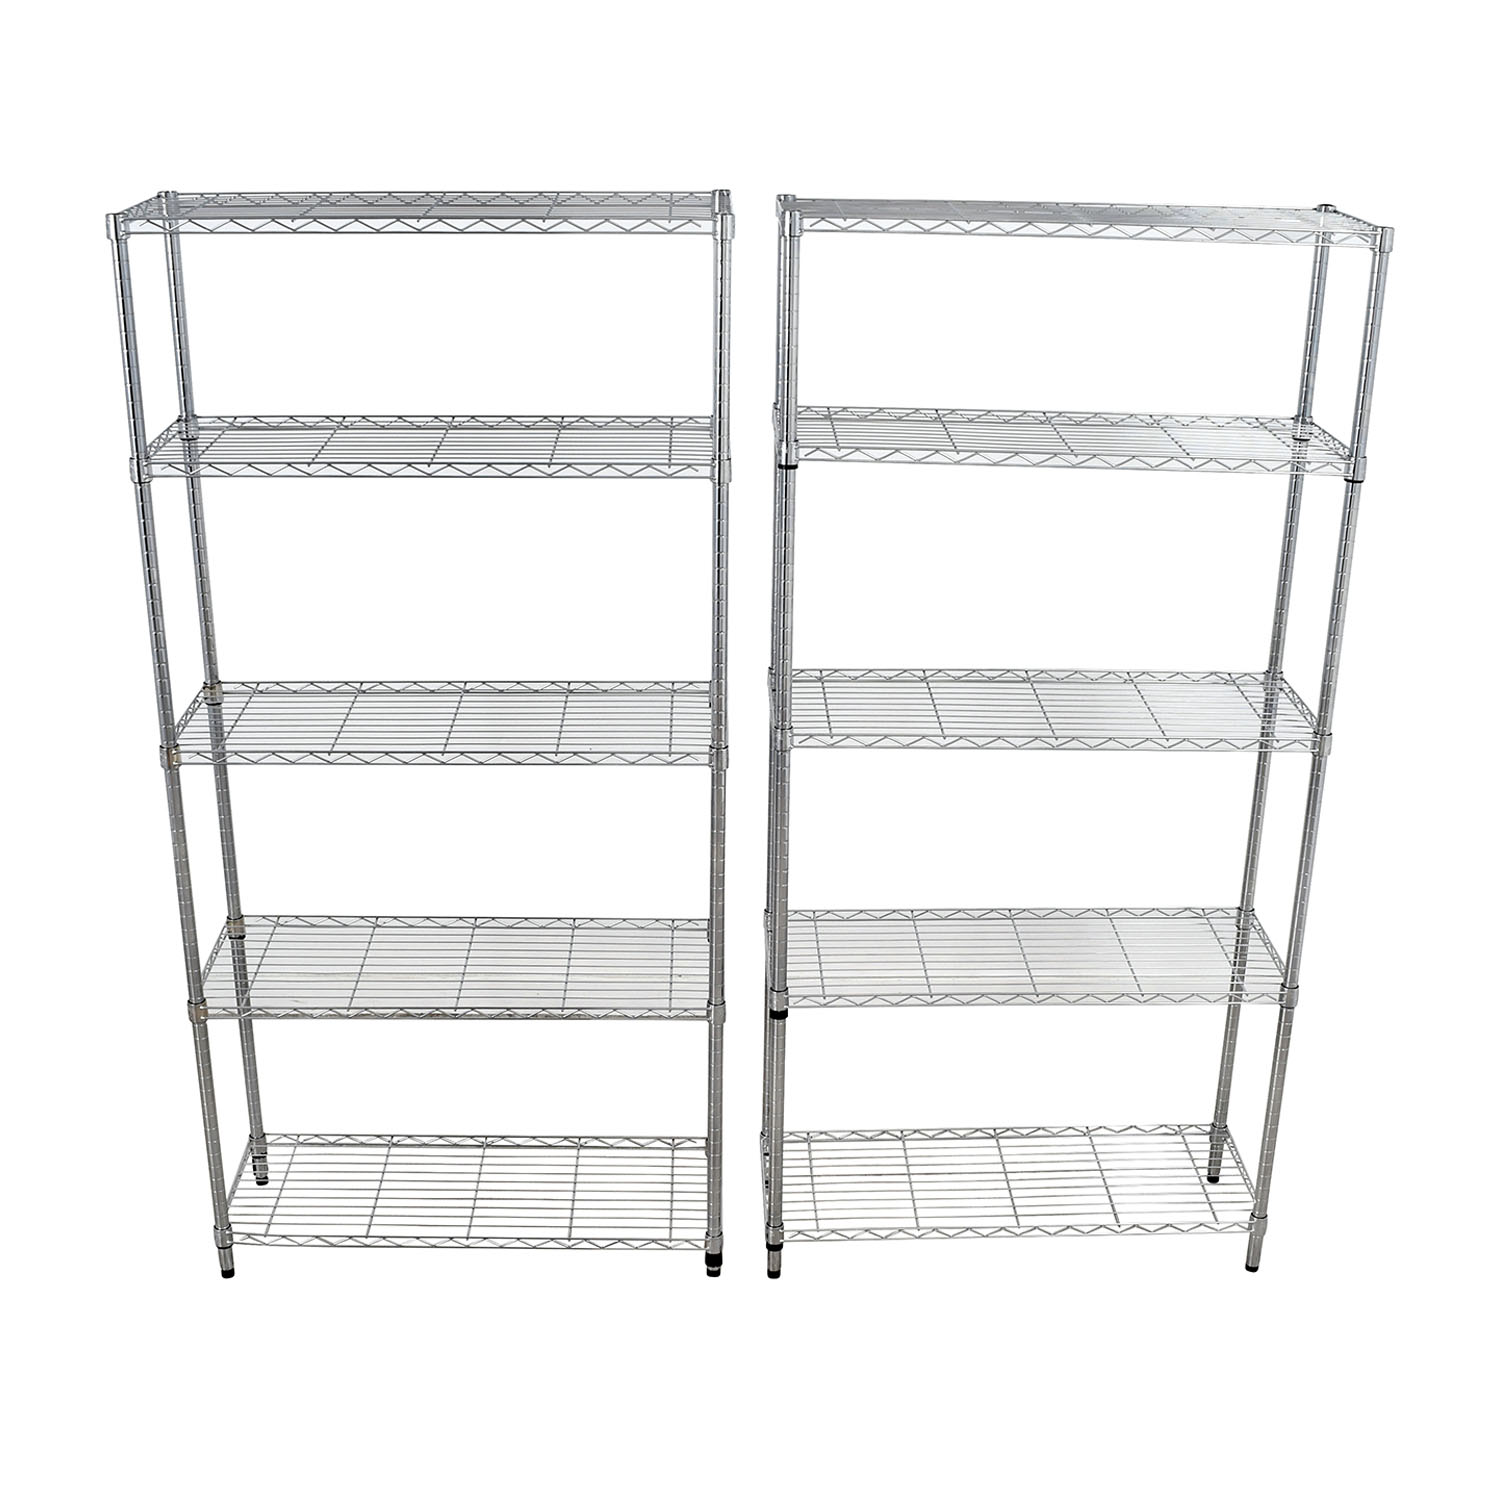 Home Depot Home Depot Chrome Five-Shelf Units on sale